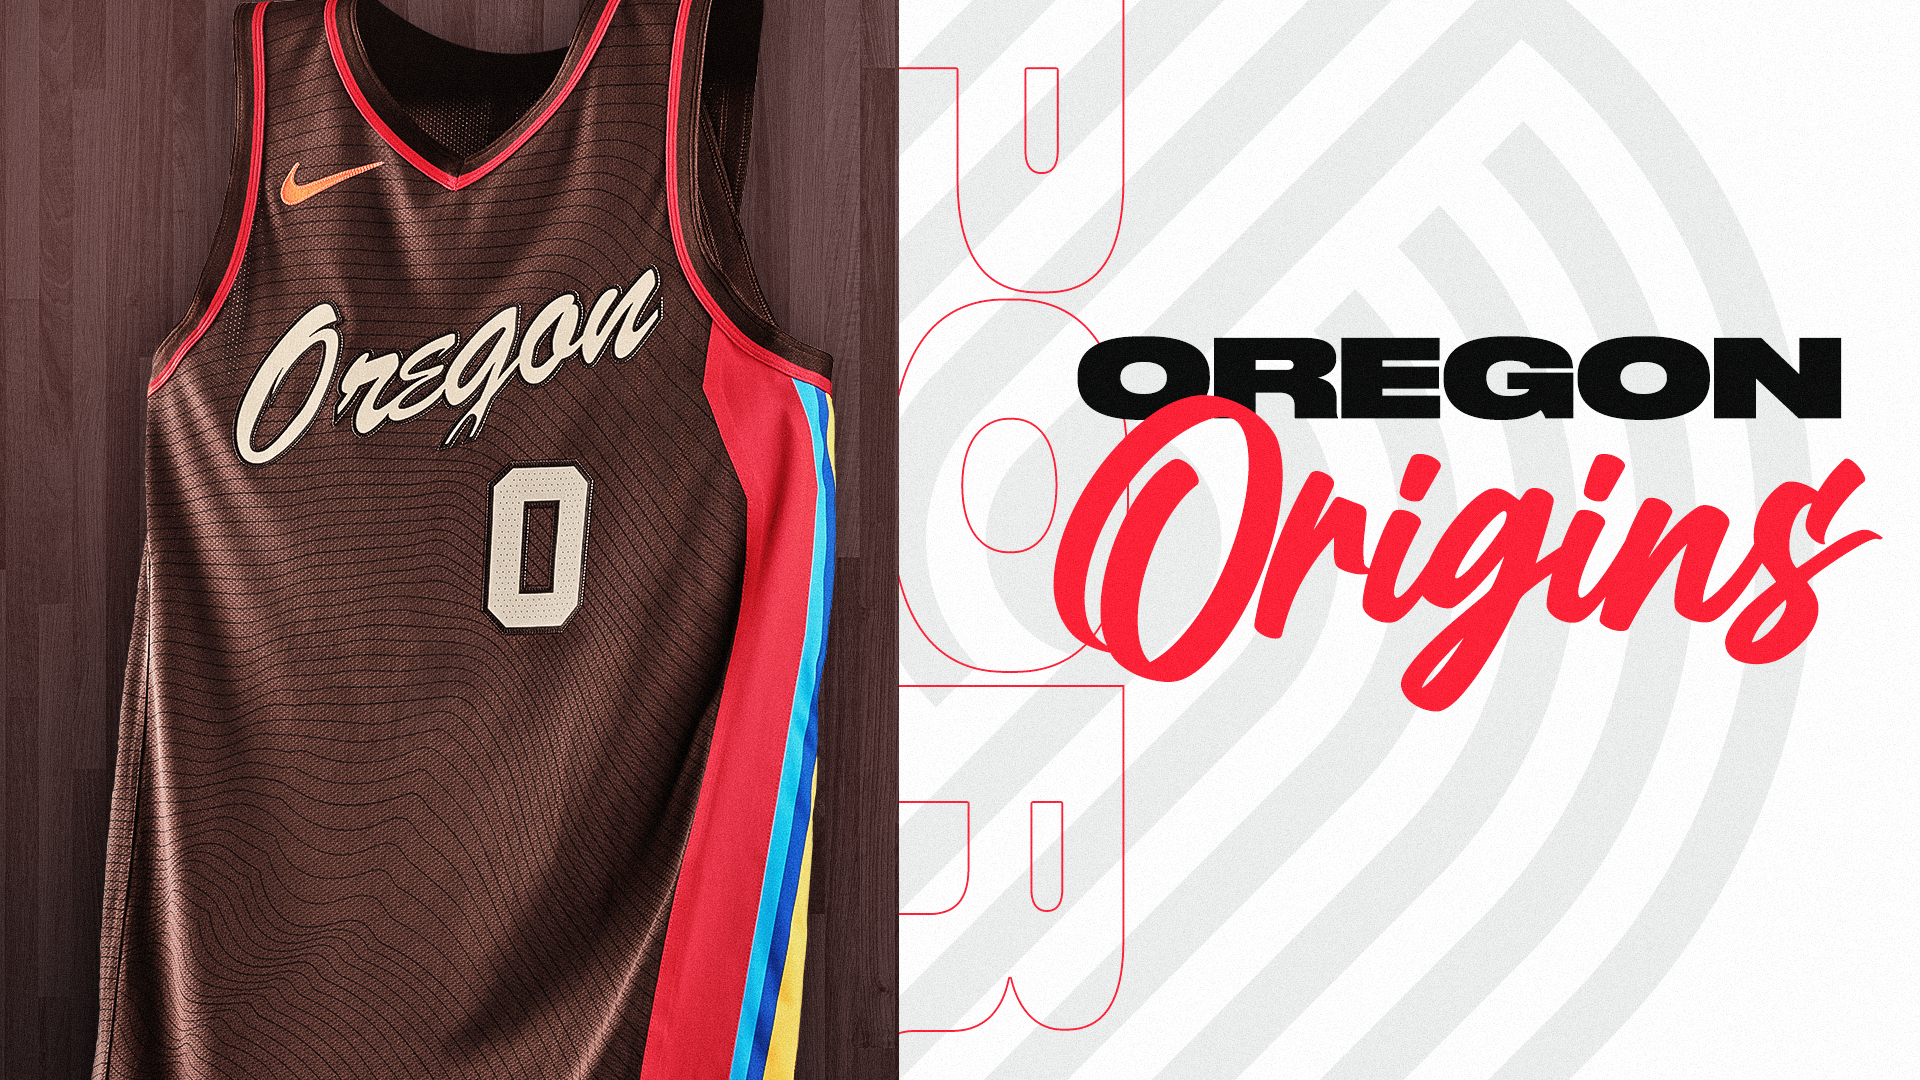 Portland Trail Blazers: Oregon Origins